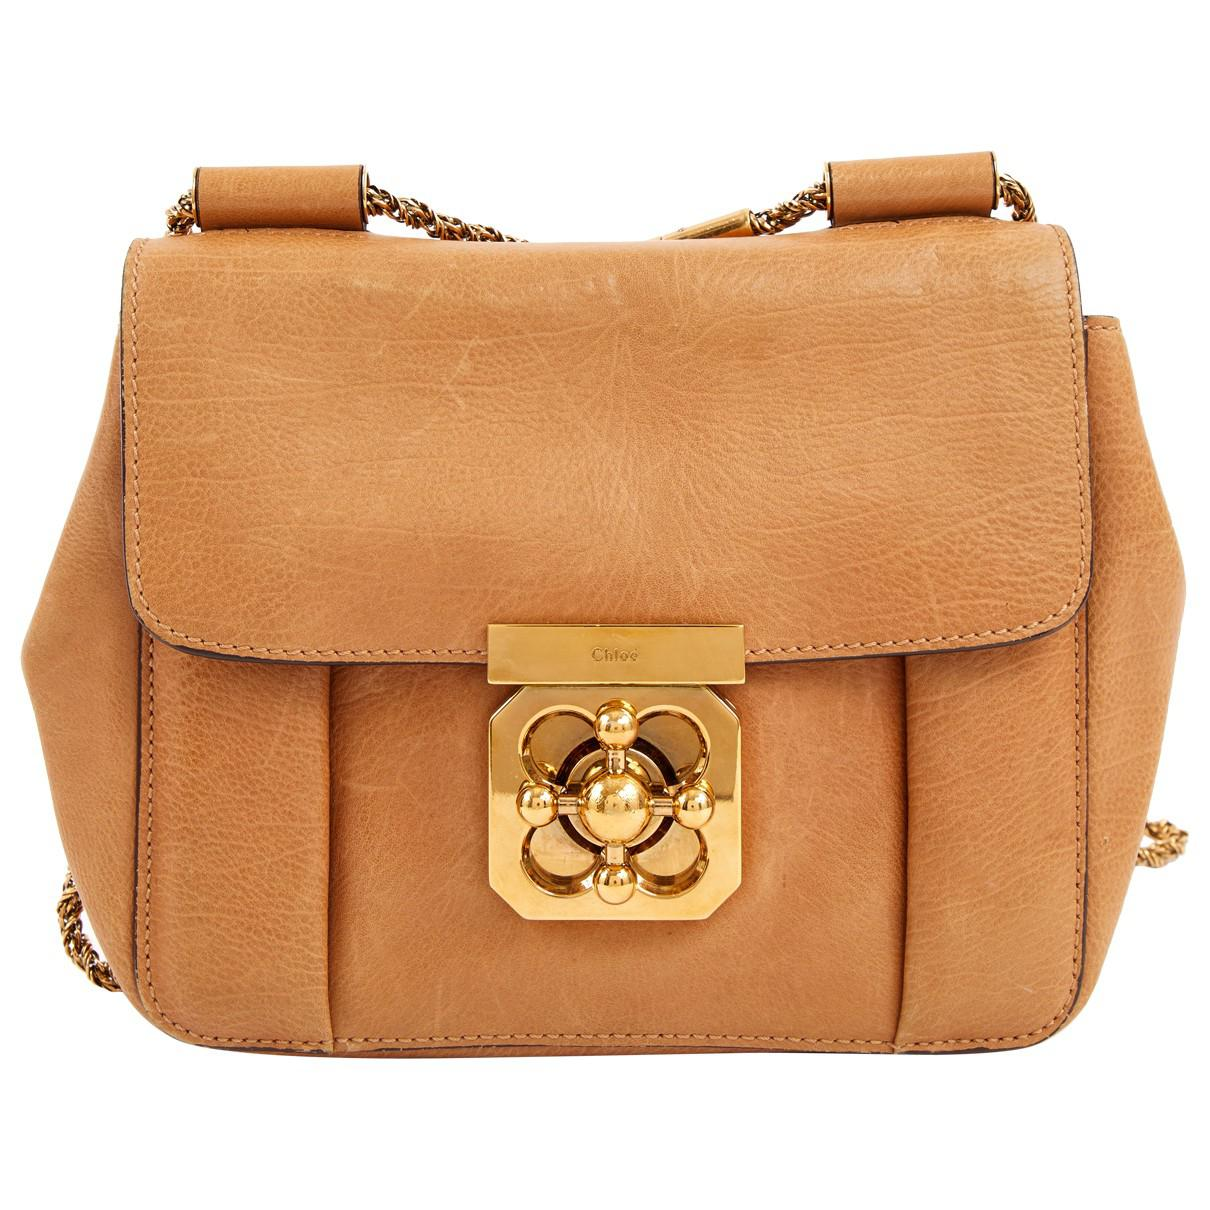 Pre-owned - Leather crossbody bag Chlo fpBBQ